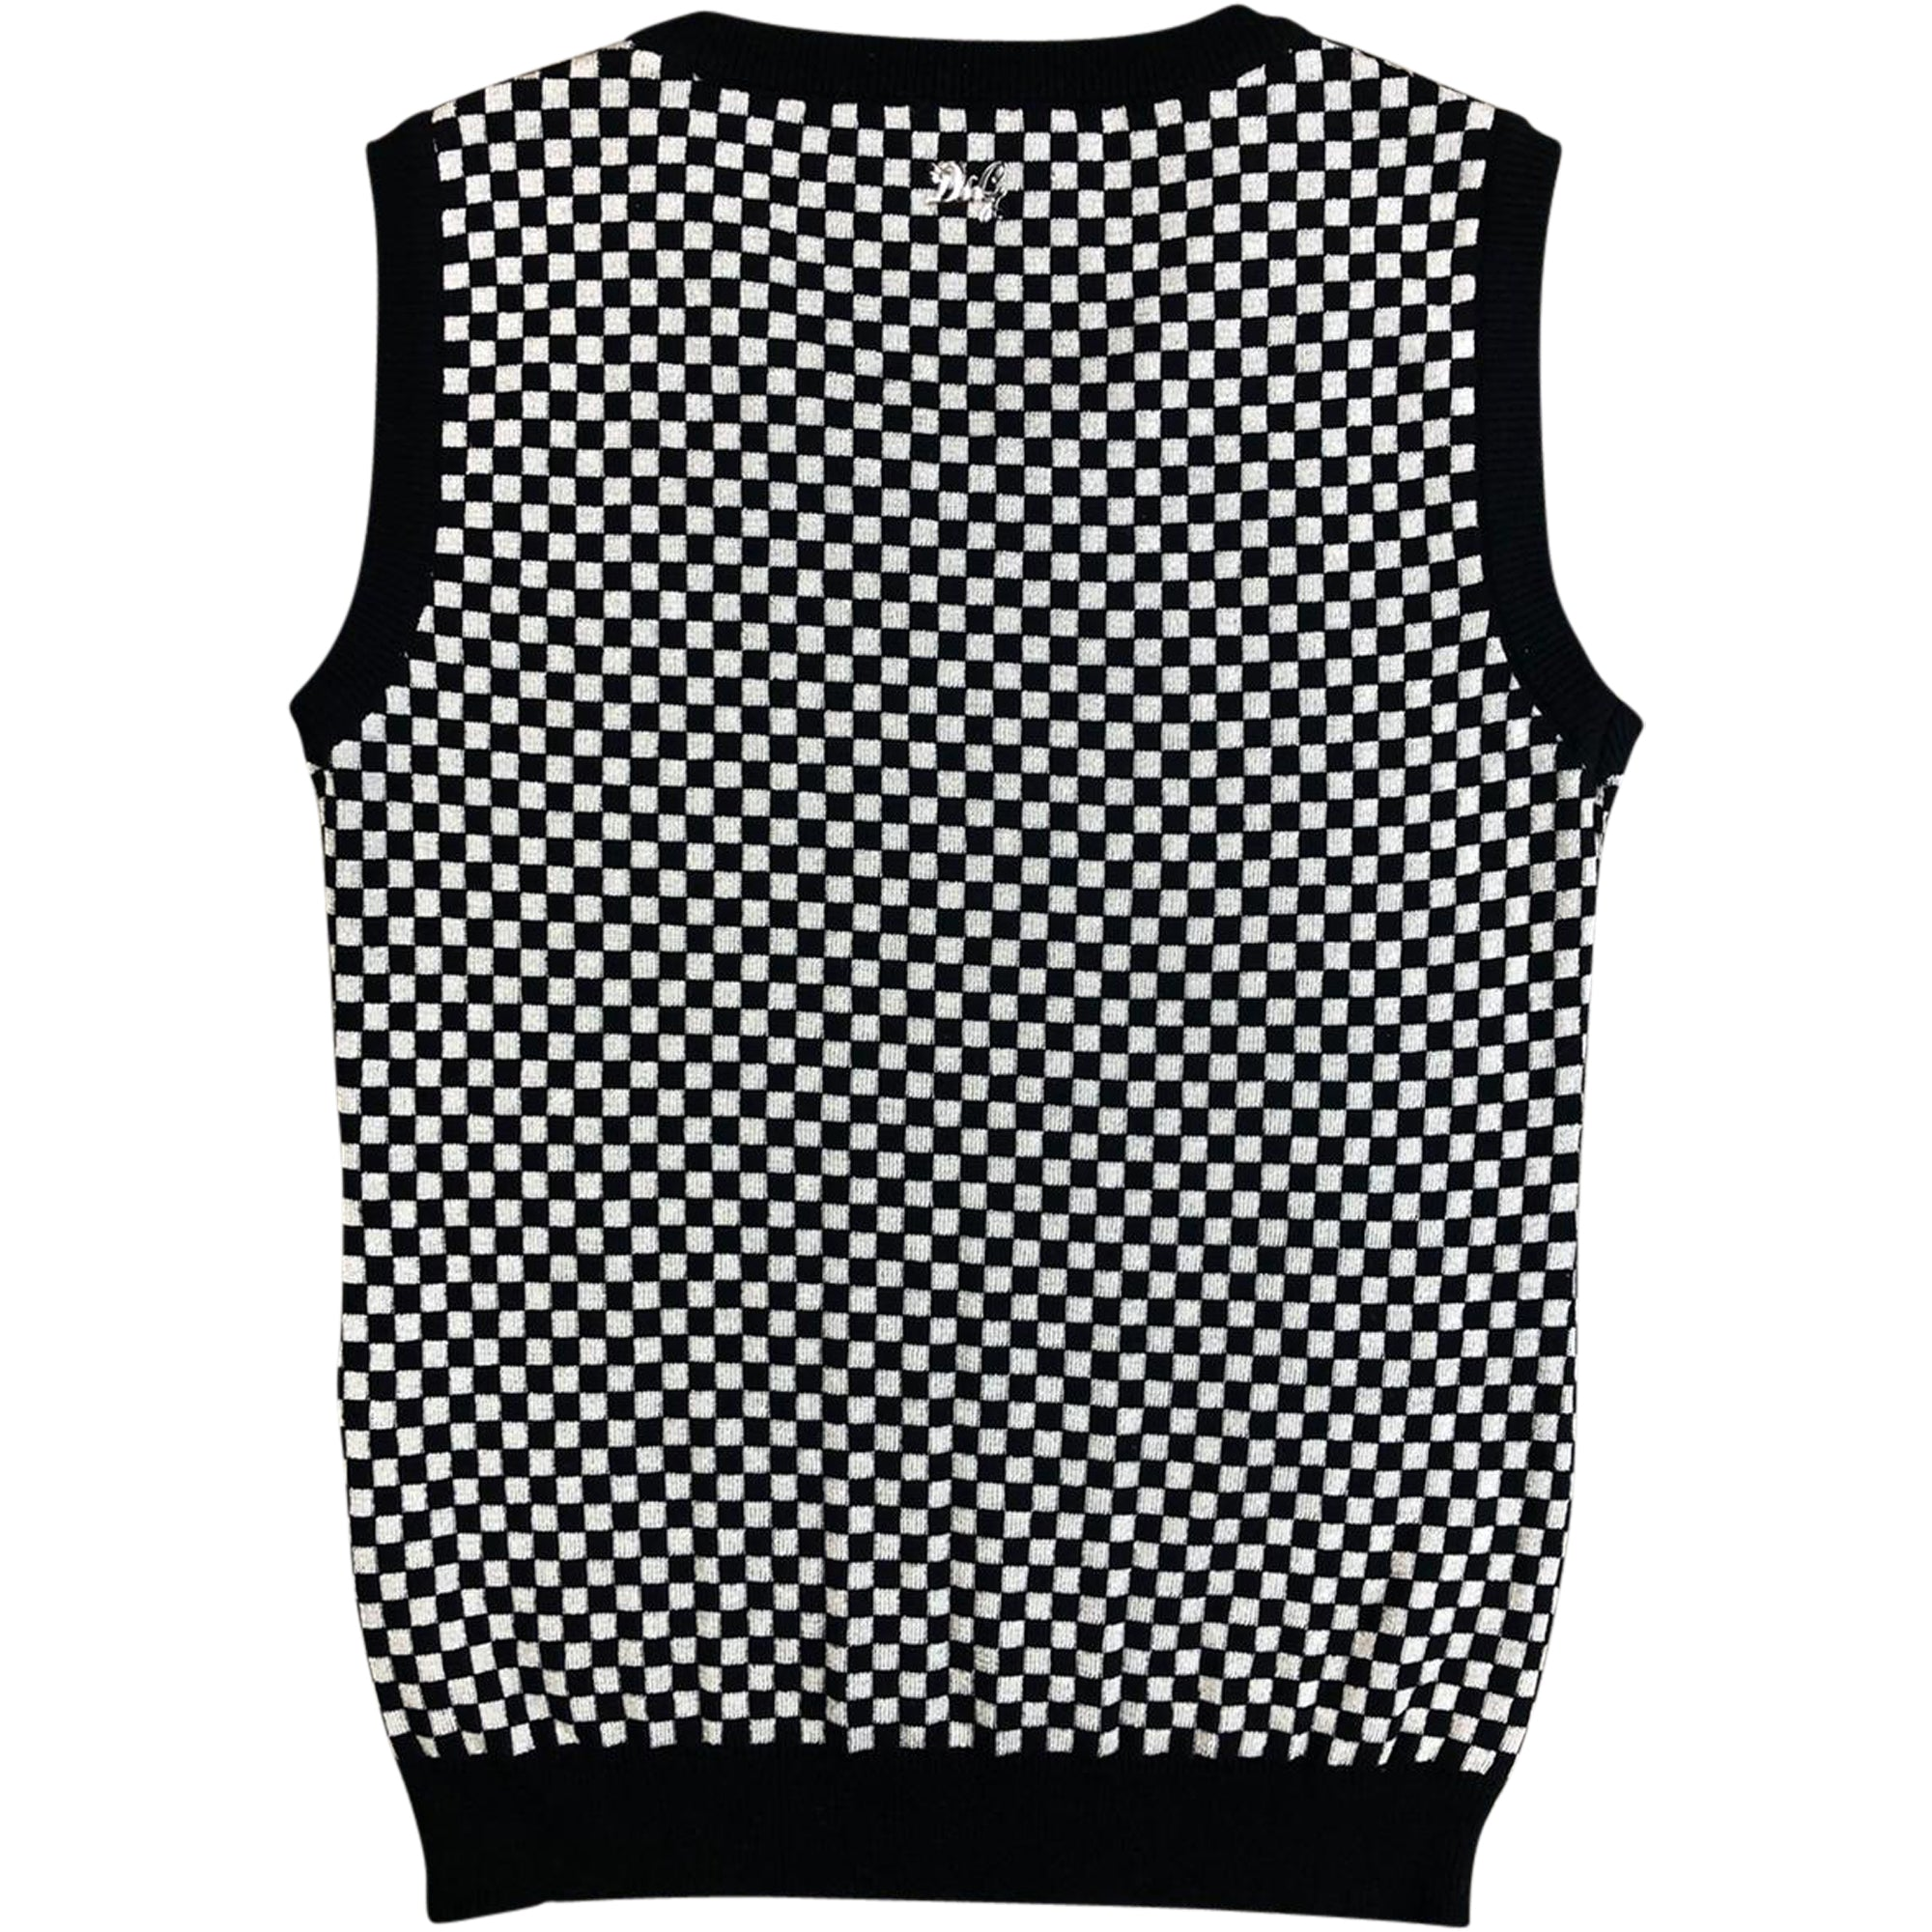 Dolce and Gabbana Knit Vest (Checkerboard) UK 6-10